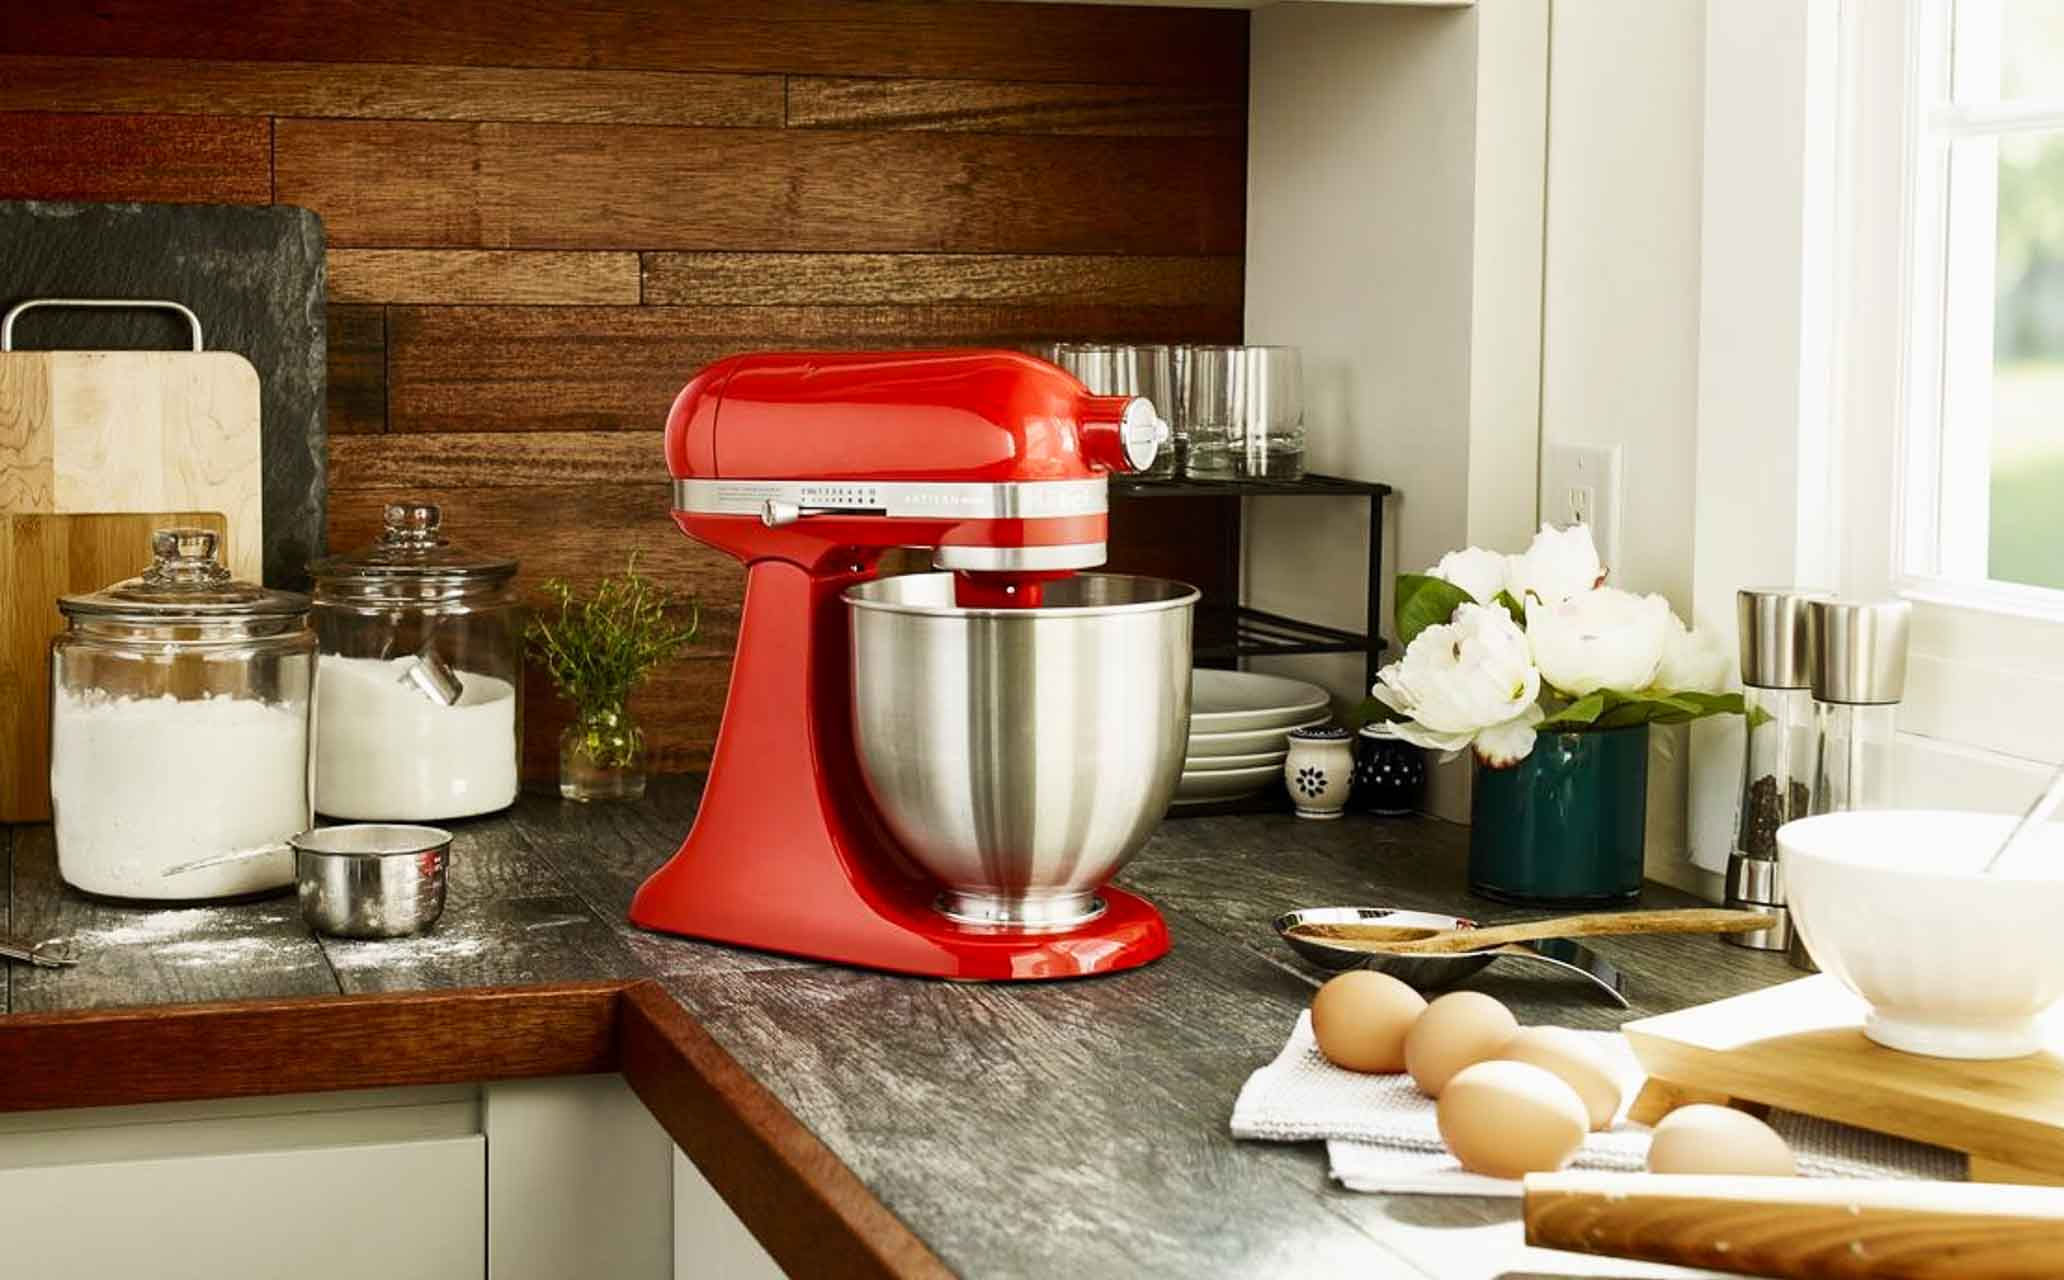 Will a KitchenAid Mixer from America Work Abroad or in Europe?